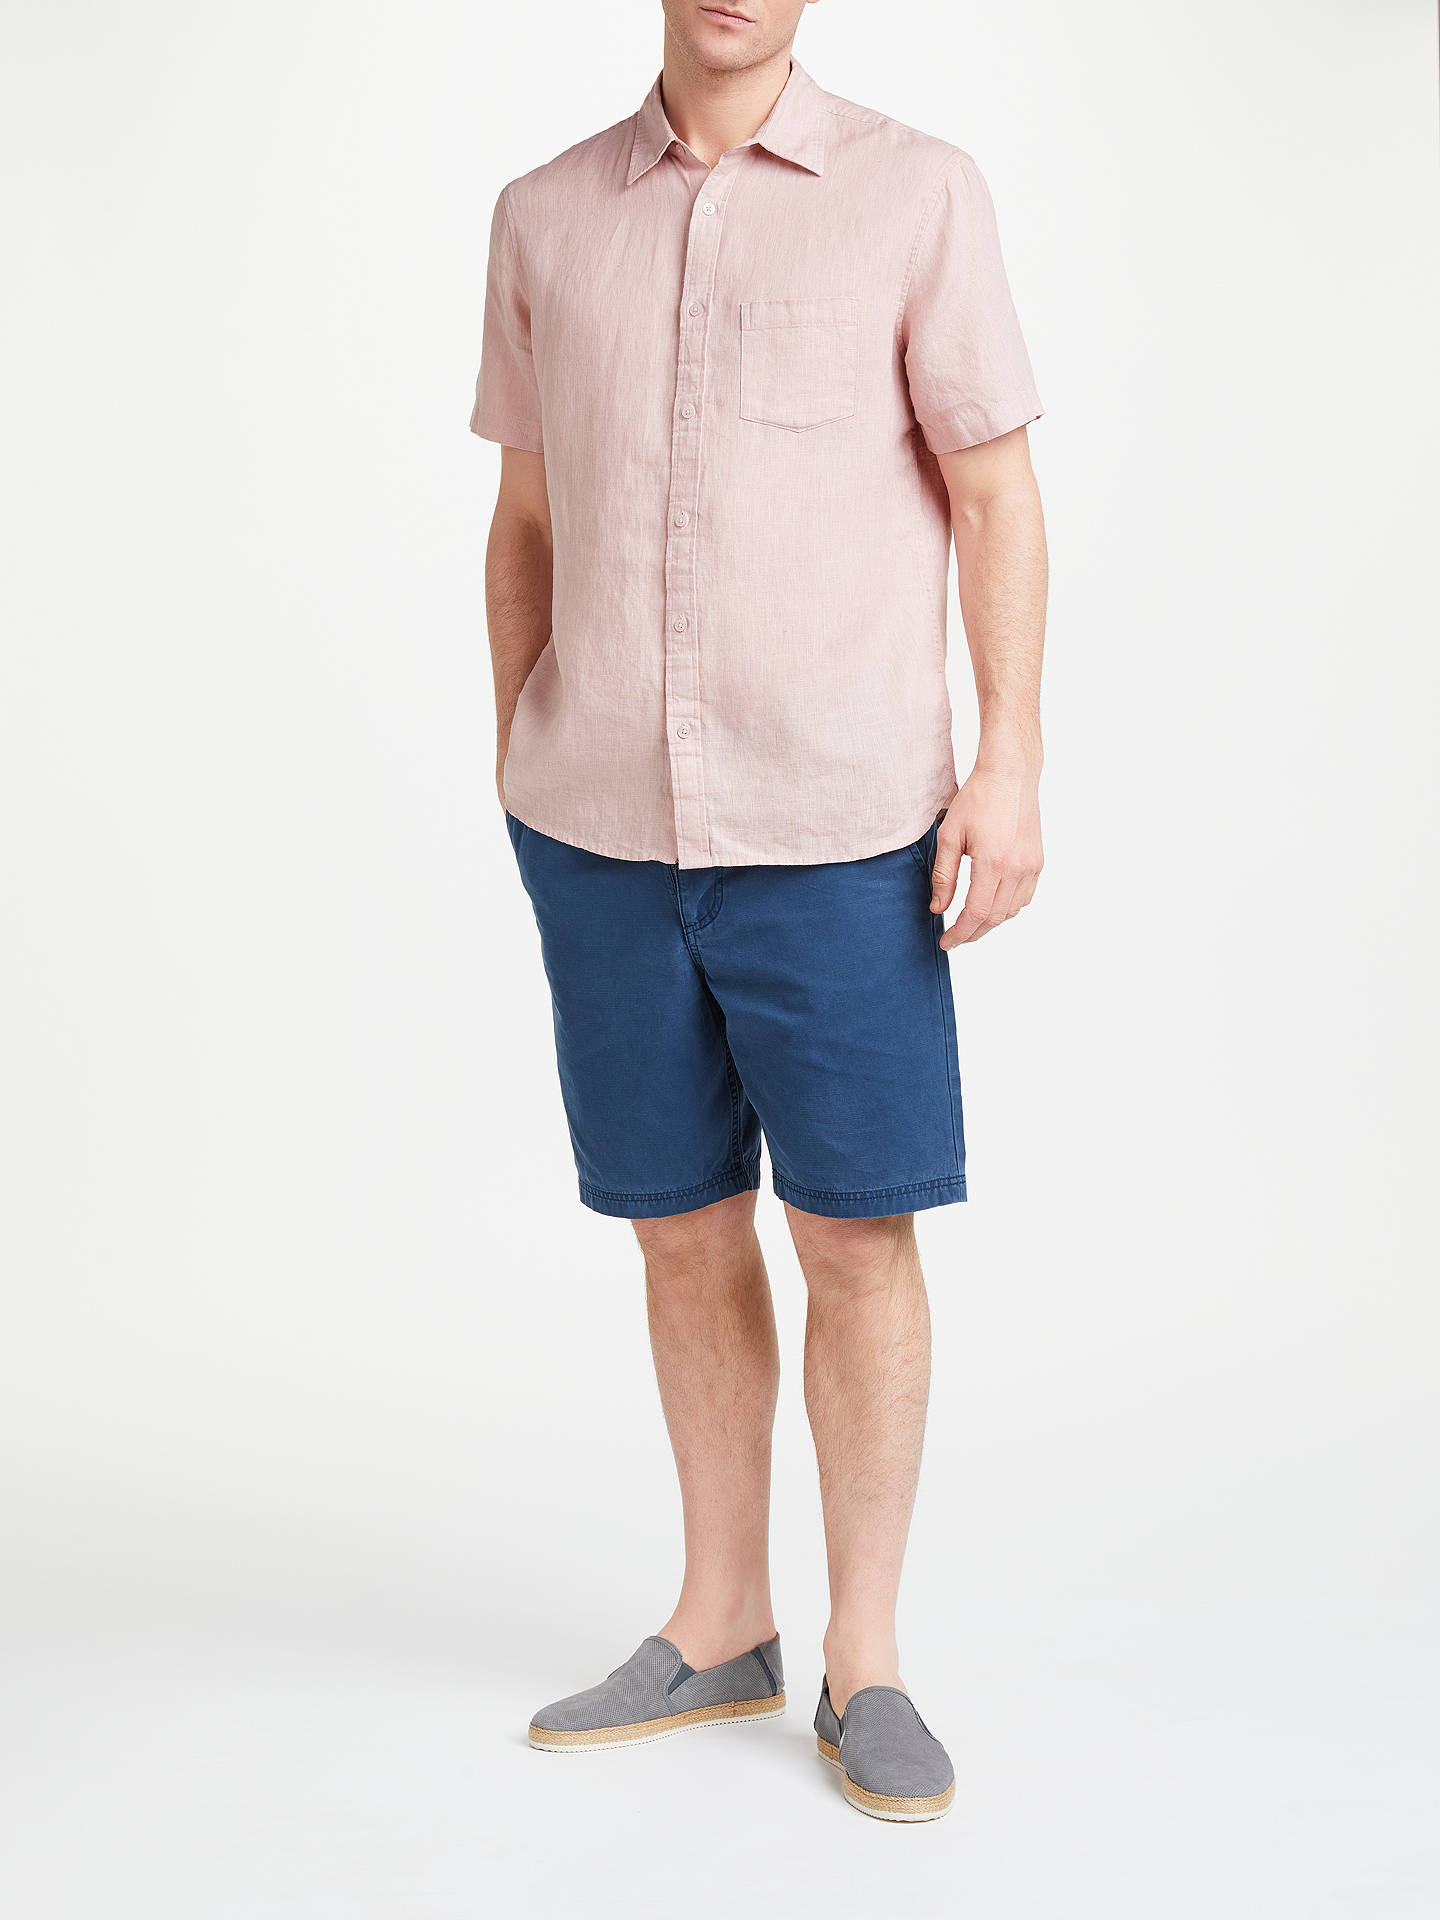 BuyJohn Lewis & Partners Short Sleeve Linen Shirt, Light Pink, S Online at johnlewis.com